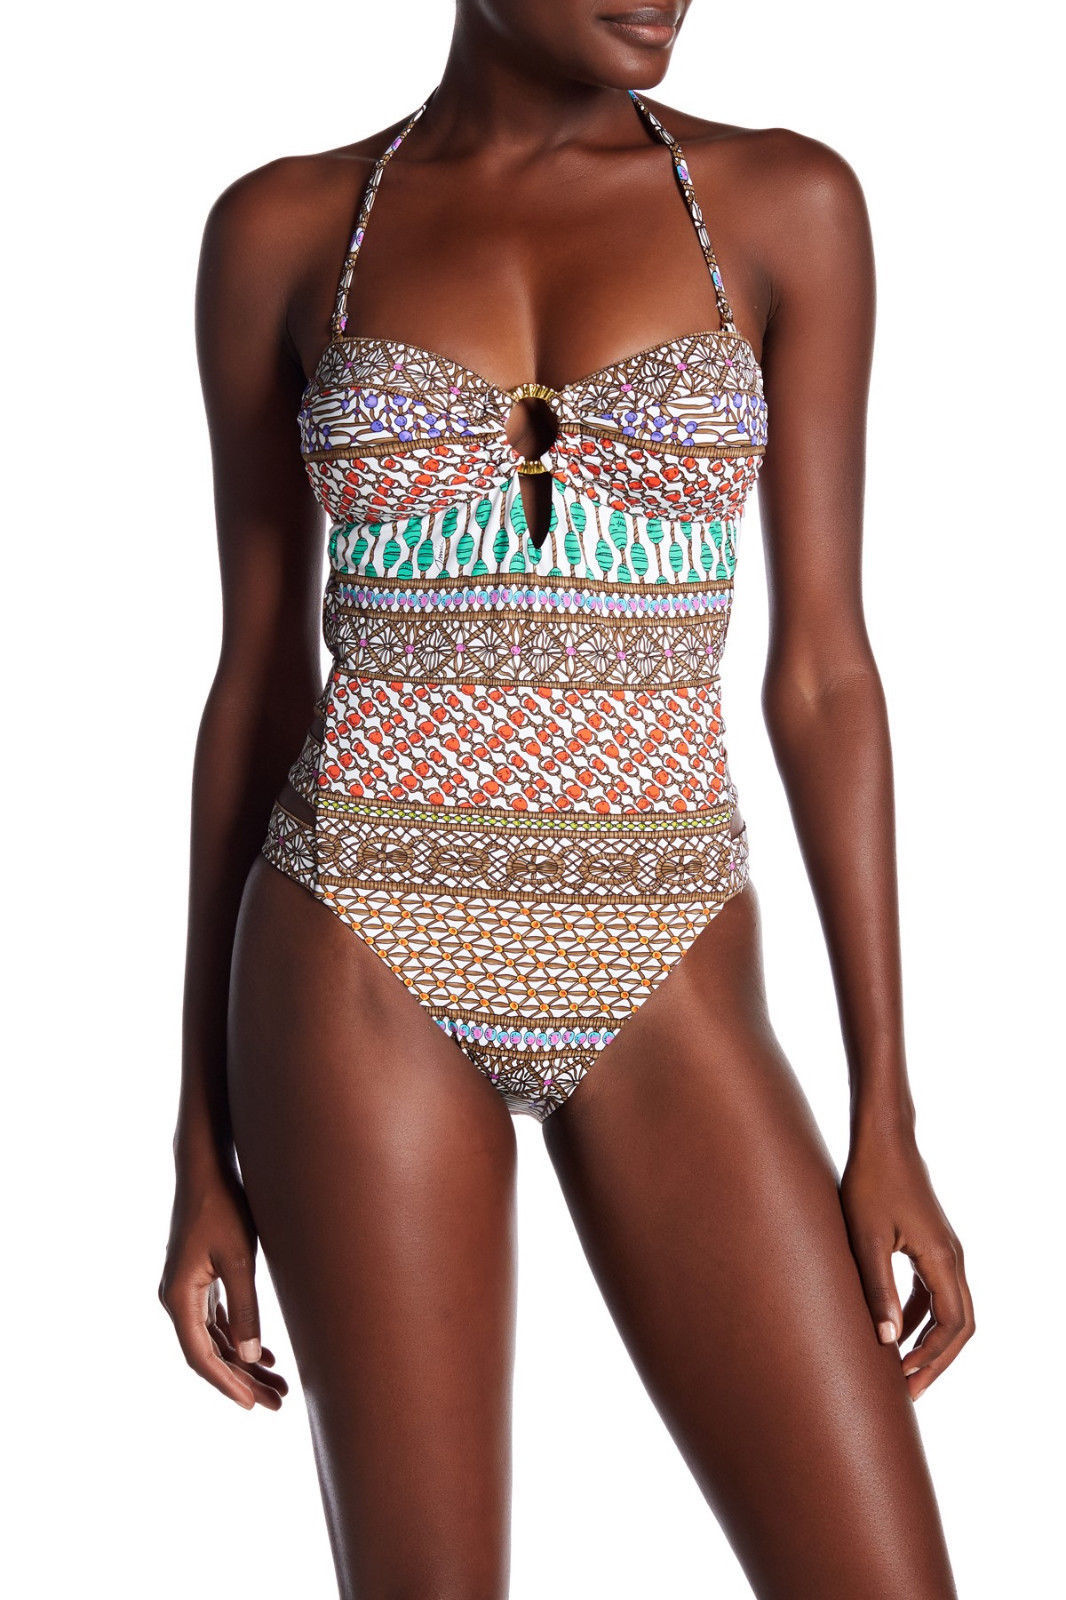 715ee43a5a NEW Trina Turk Macrame Mix Bandeau One piece and 50 similar items